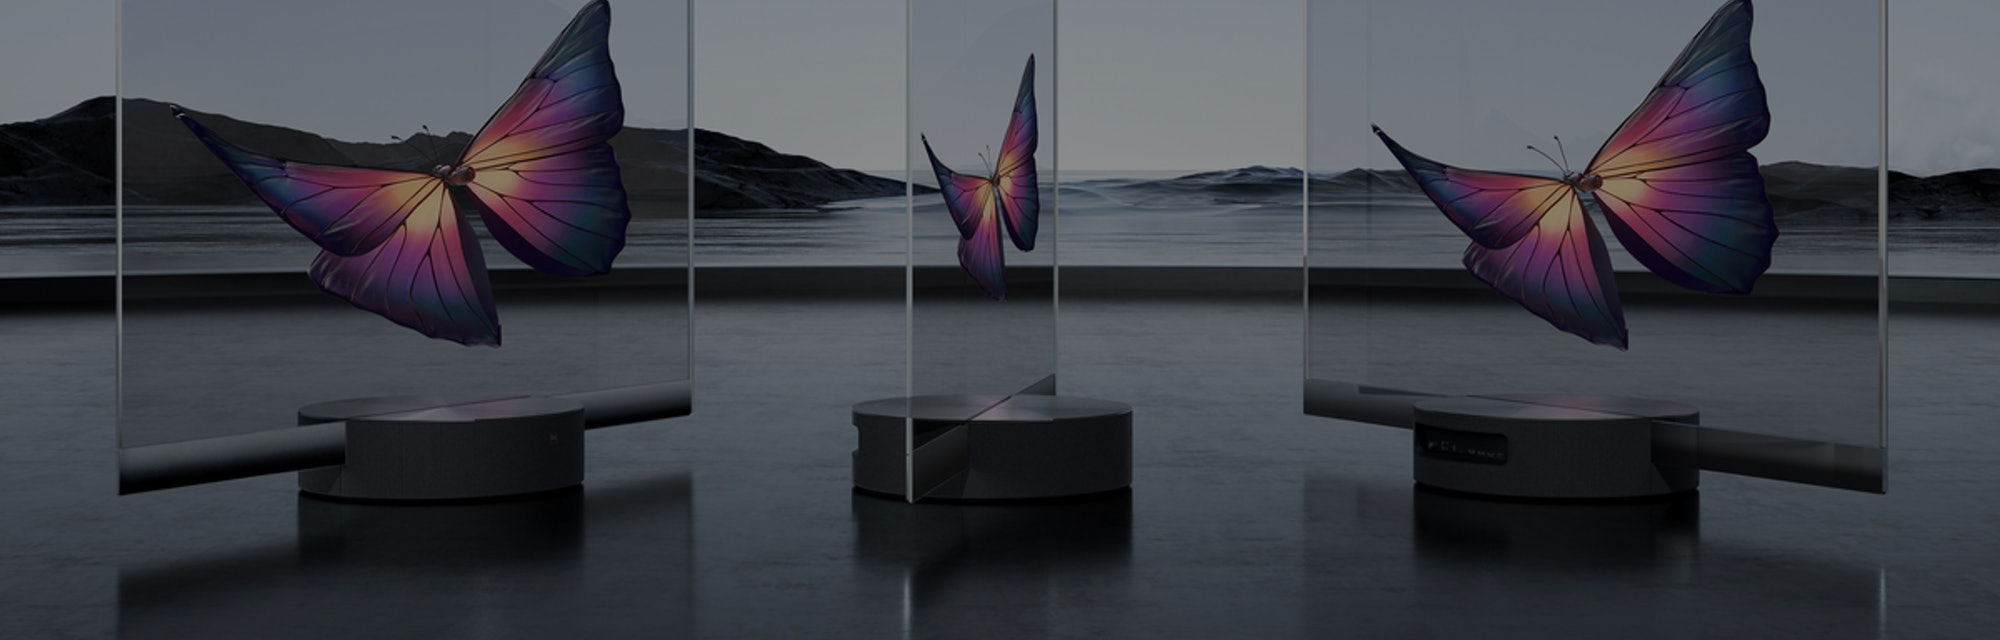 The world's first mass-produced TV by Xiaomi can be seen. The screens are transparent while there are deep purple butterflies seen inside. The background is minimalist depicting serene water and a few rocky hills.